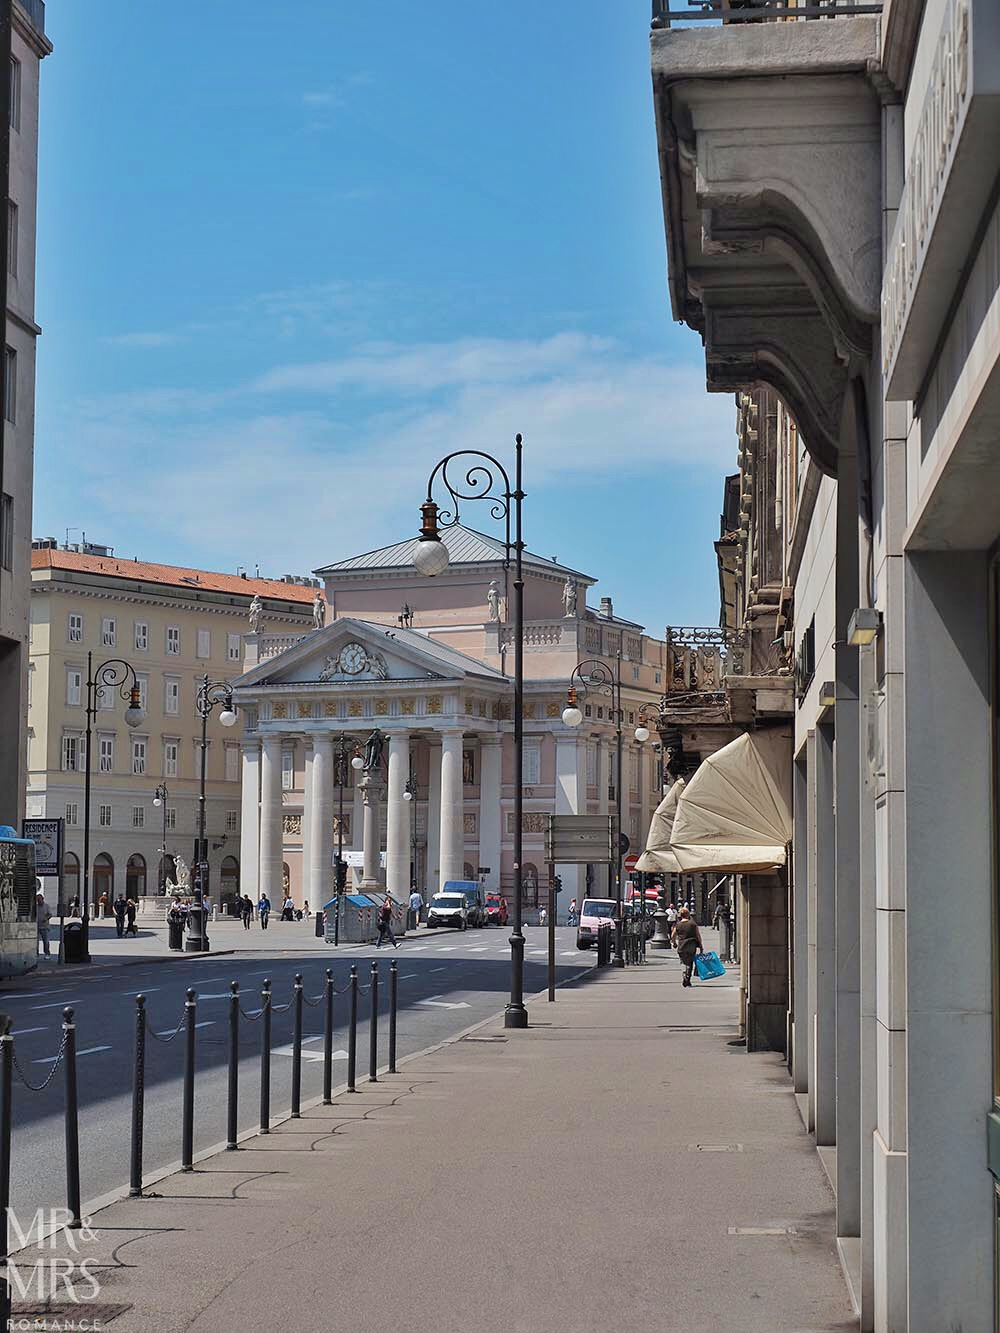 Trieste guide - Grand Canal